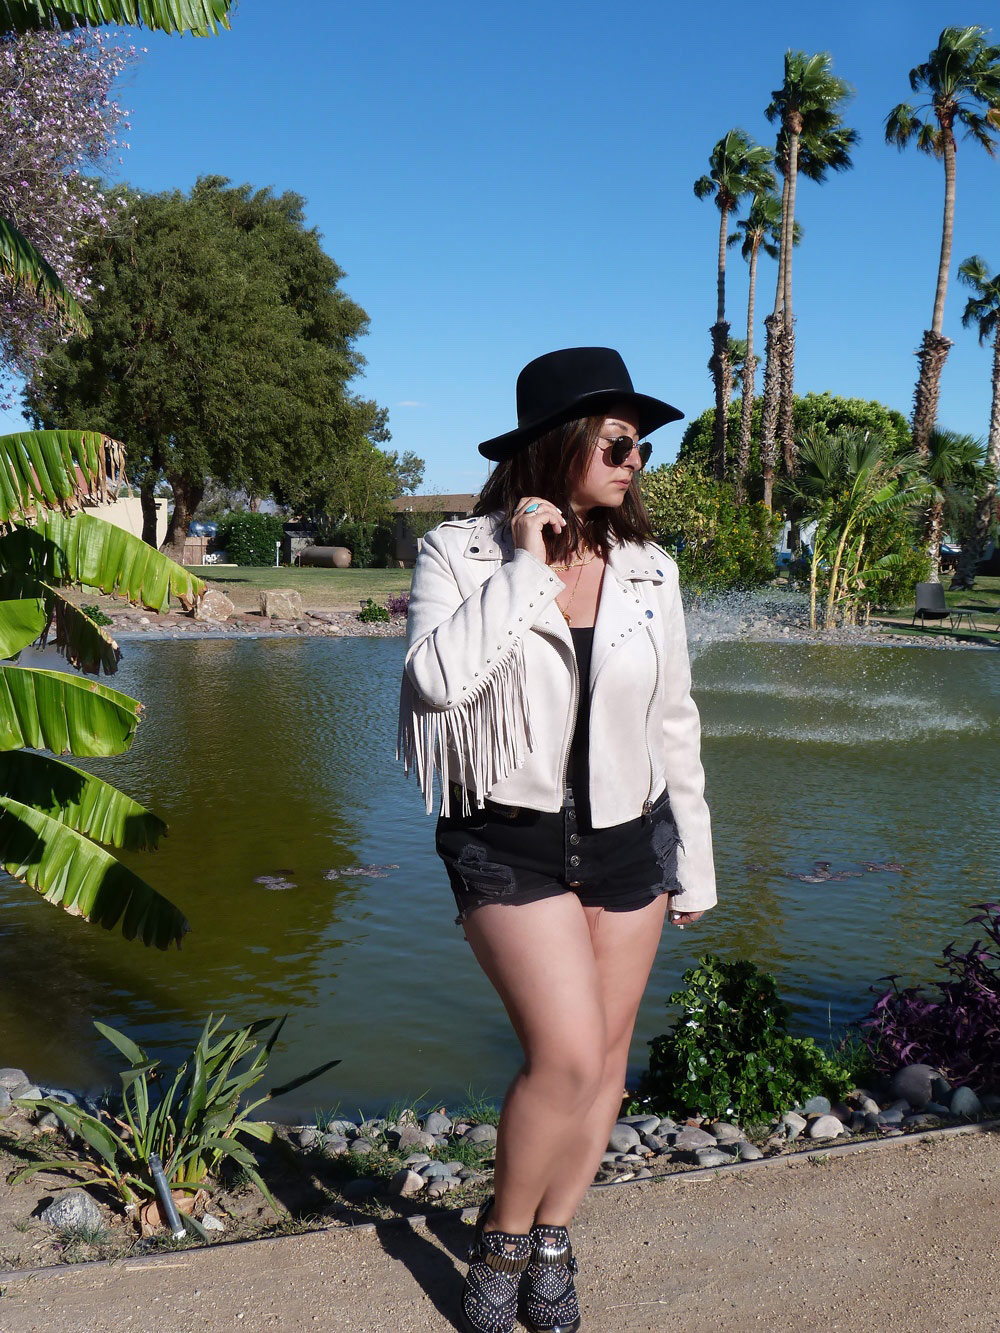 Coachella-Day1-The-Trendy-Style-8B